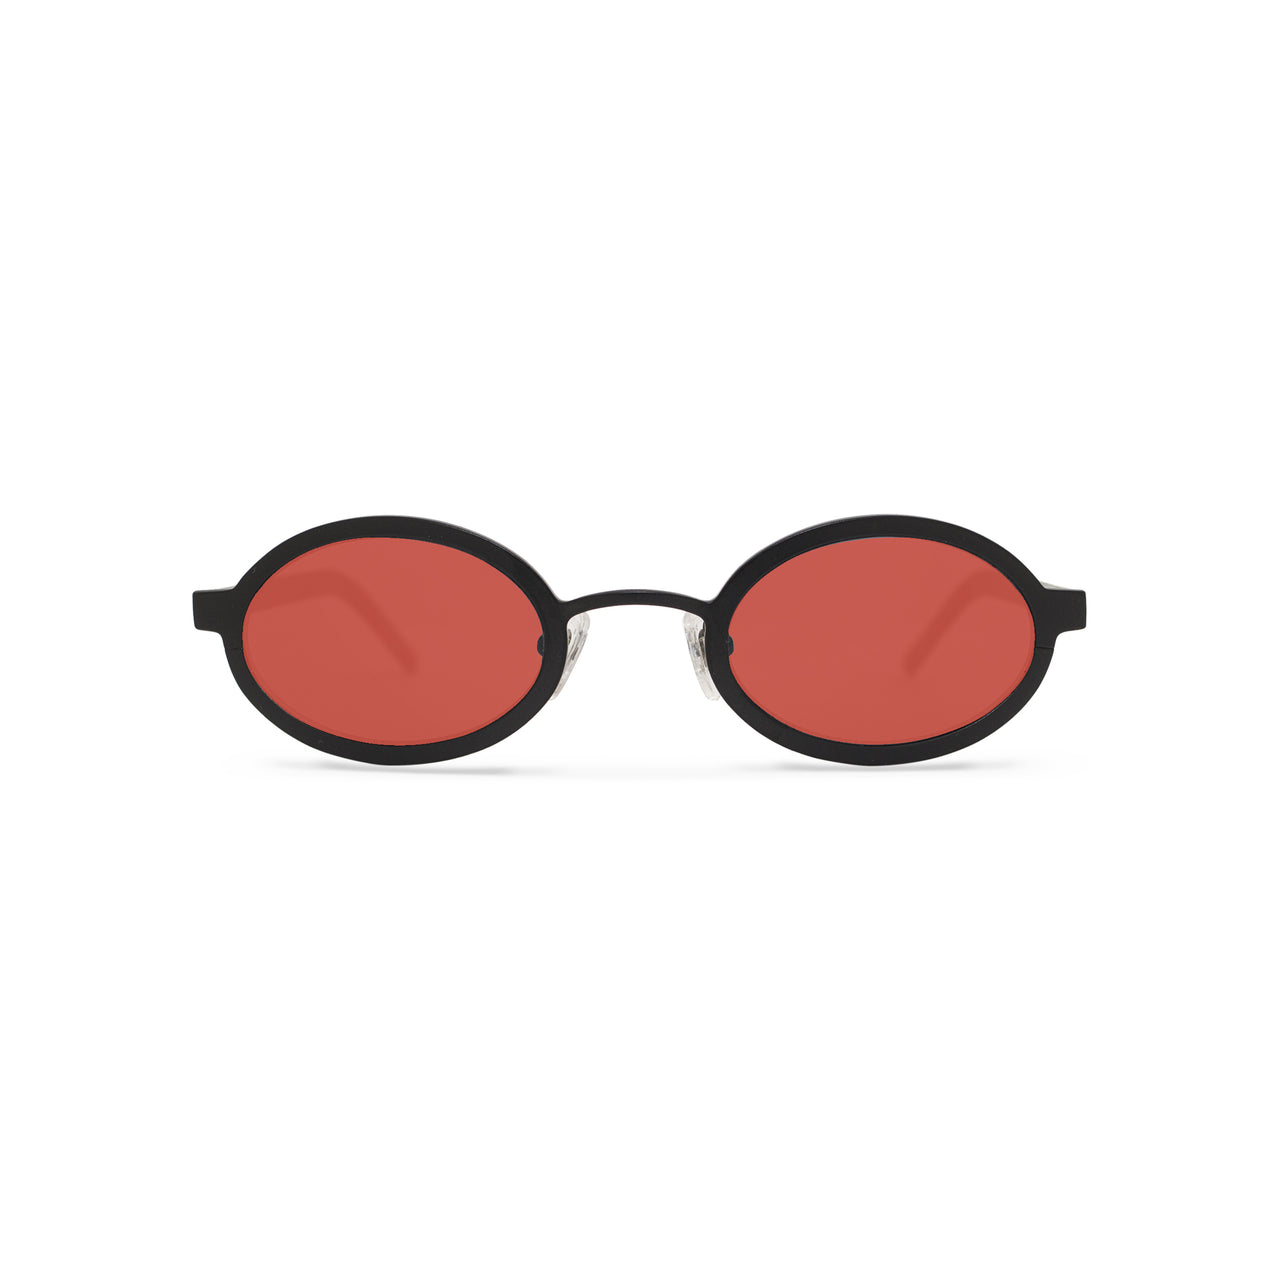 Metal. Gloss Black. Scarlet Lens. - BLYSZAK eyewear eyewear - eyewear, optical, sunglasses